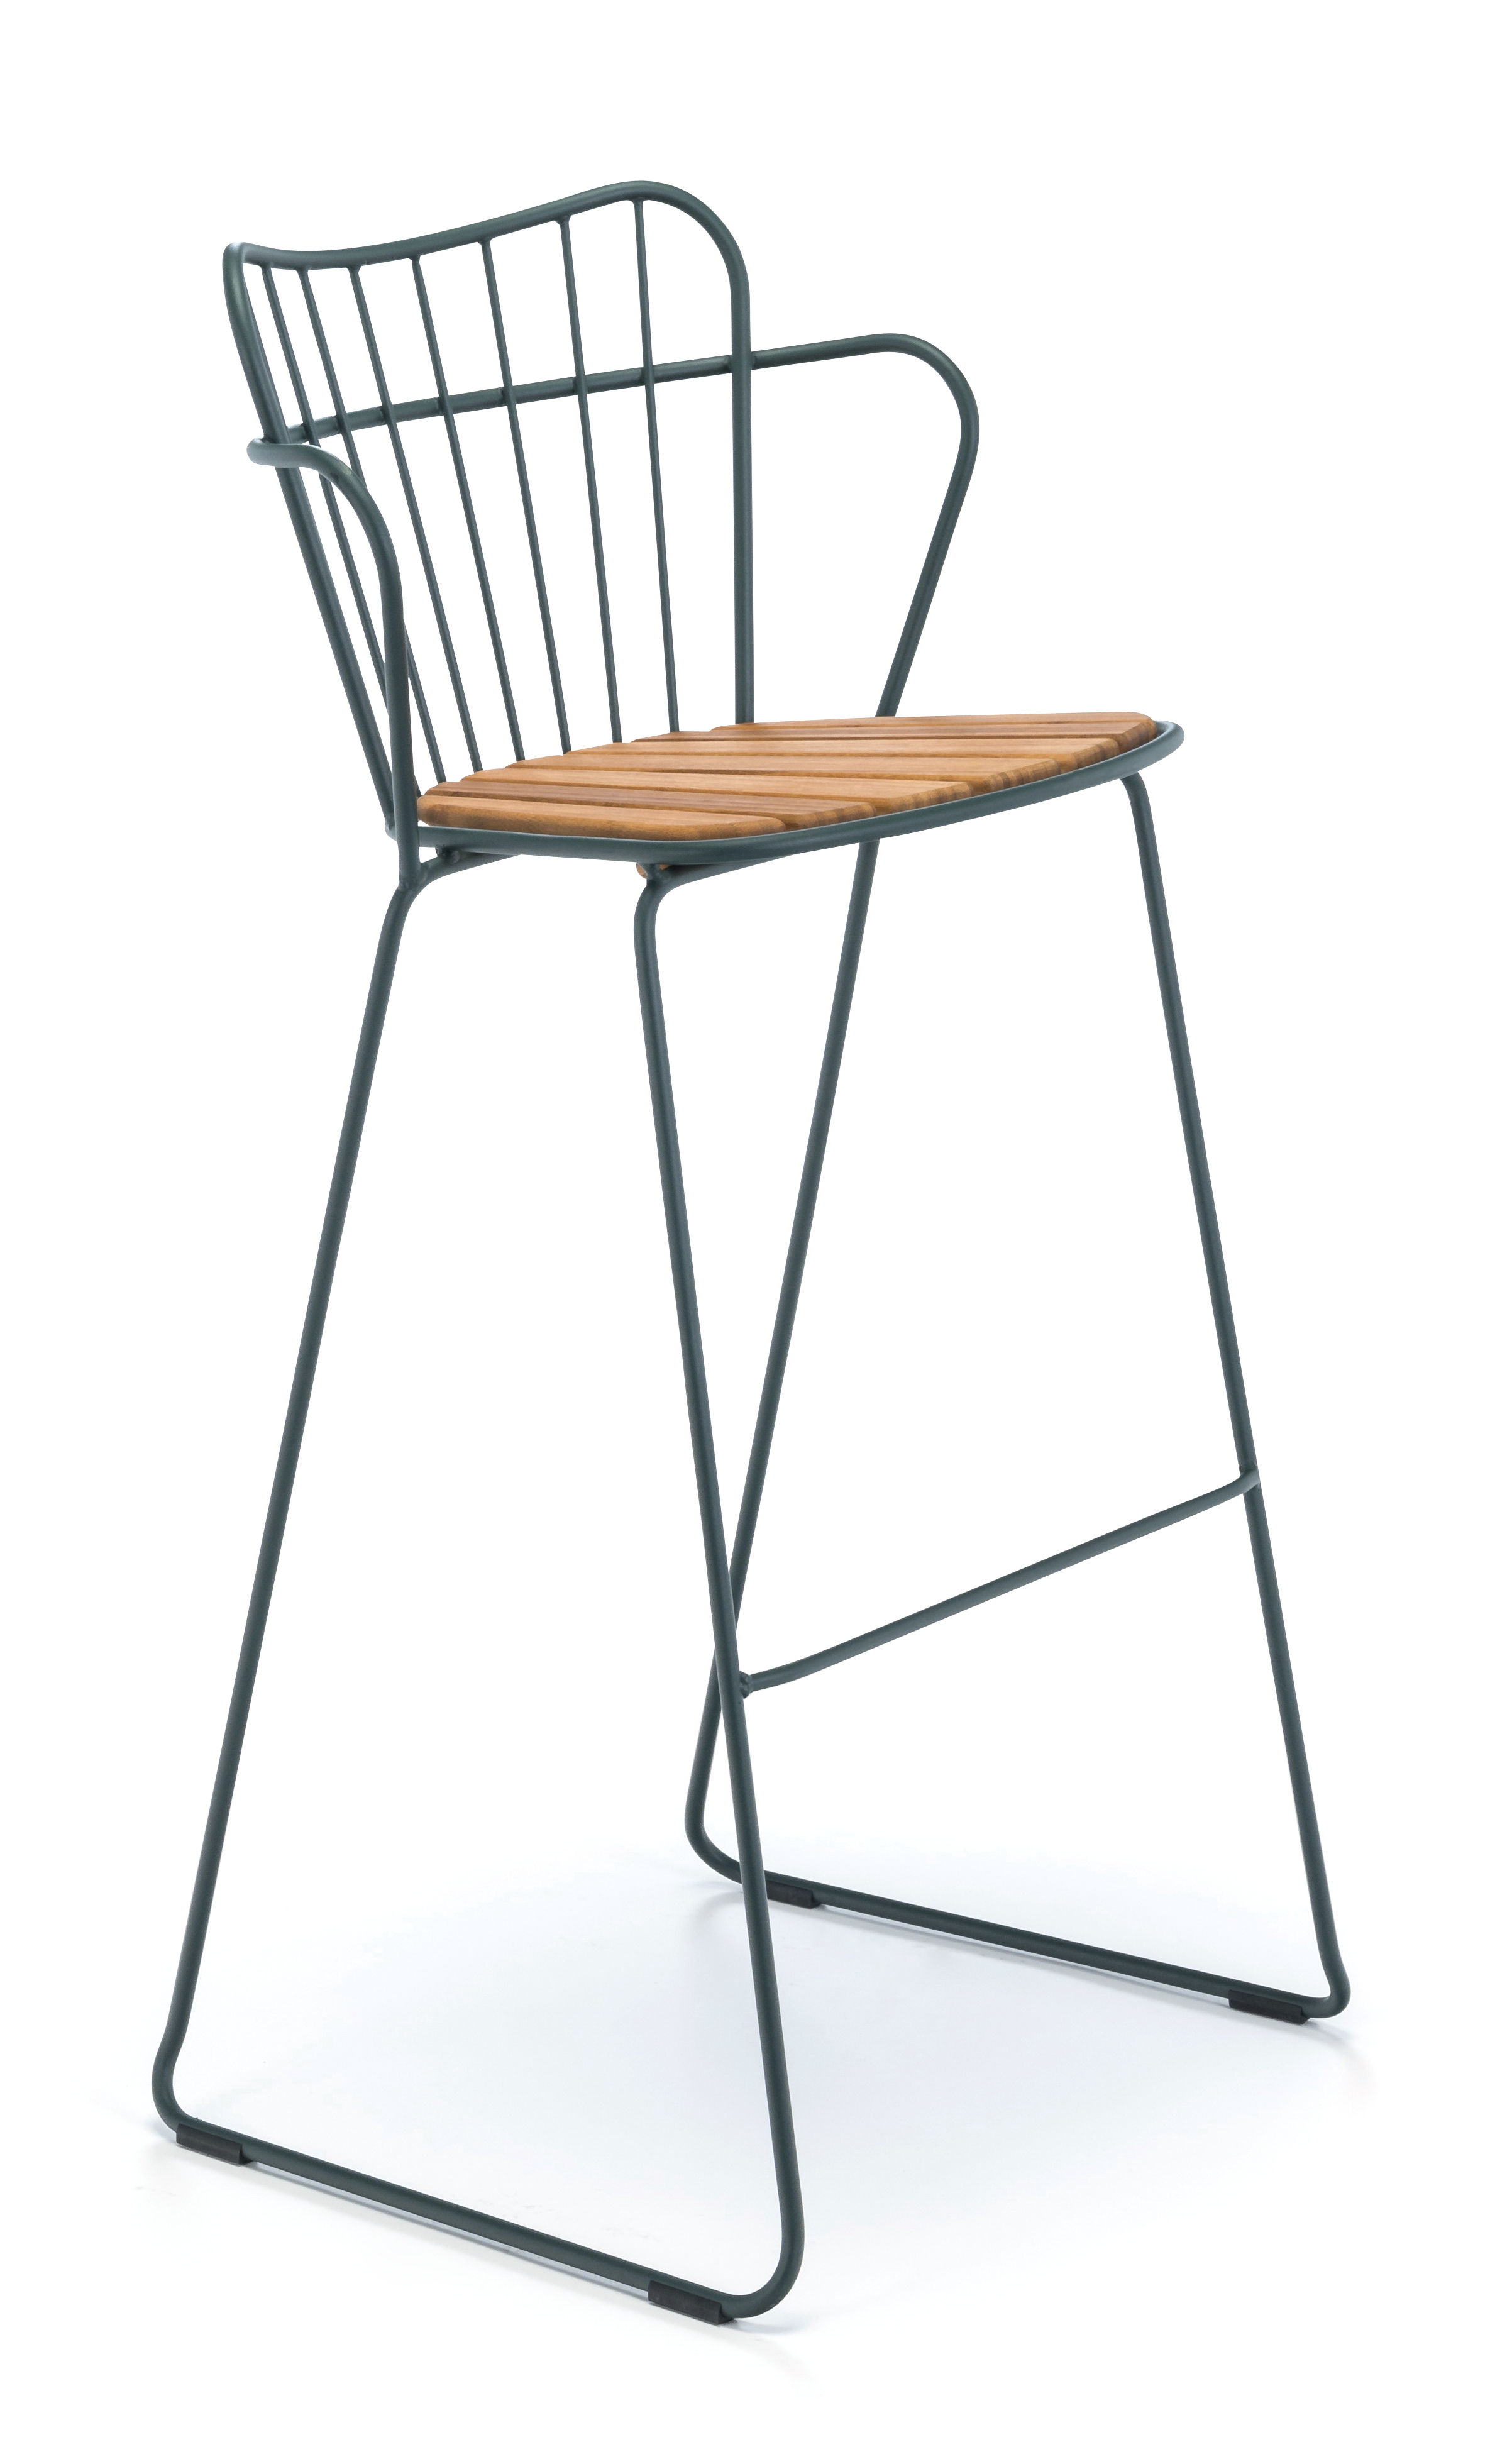 Furniture - Bar Stools - Paon Bar chair - / Metal & bamboo by Houe - Fir tree green - Bamboo, Powder-coated steel